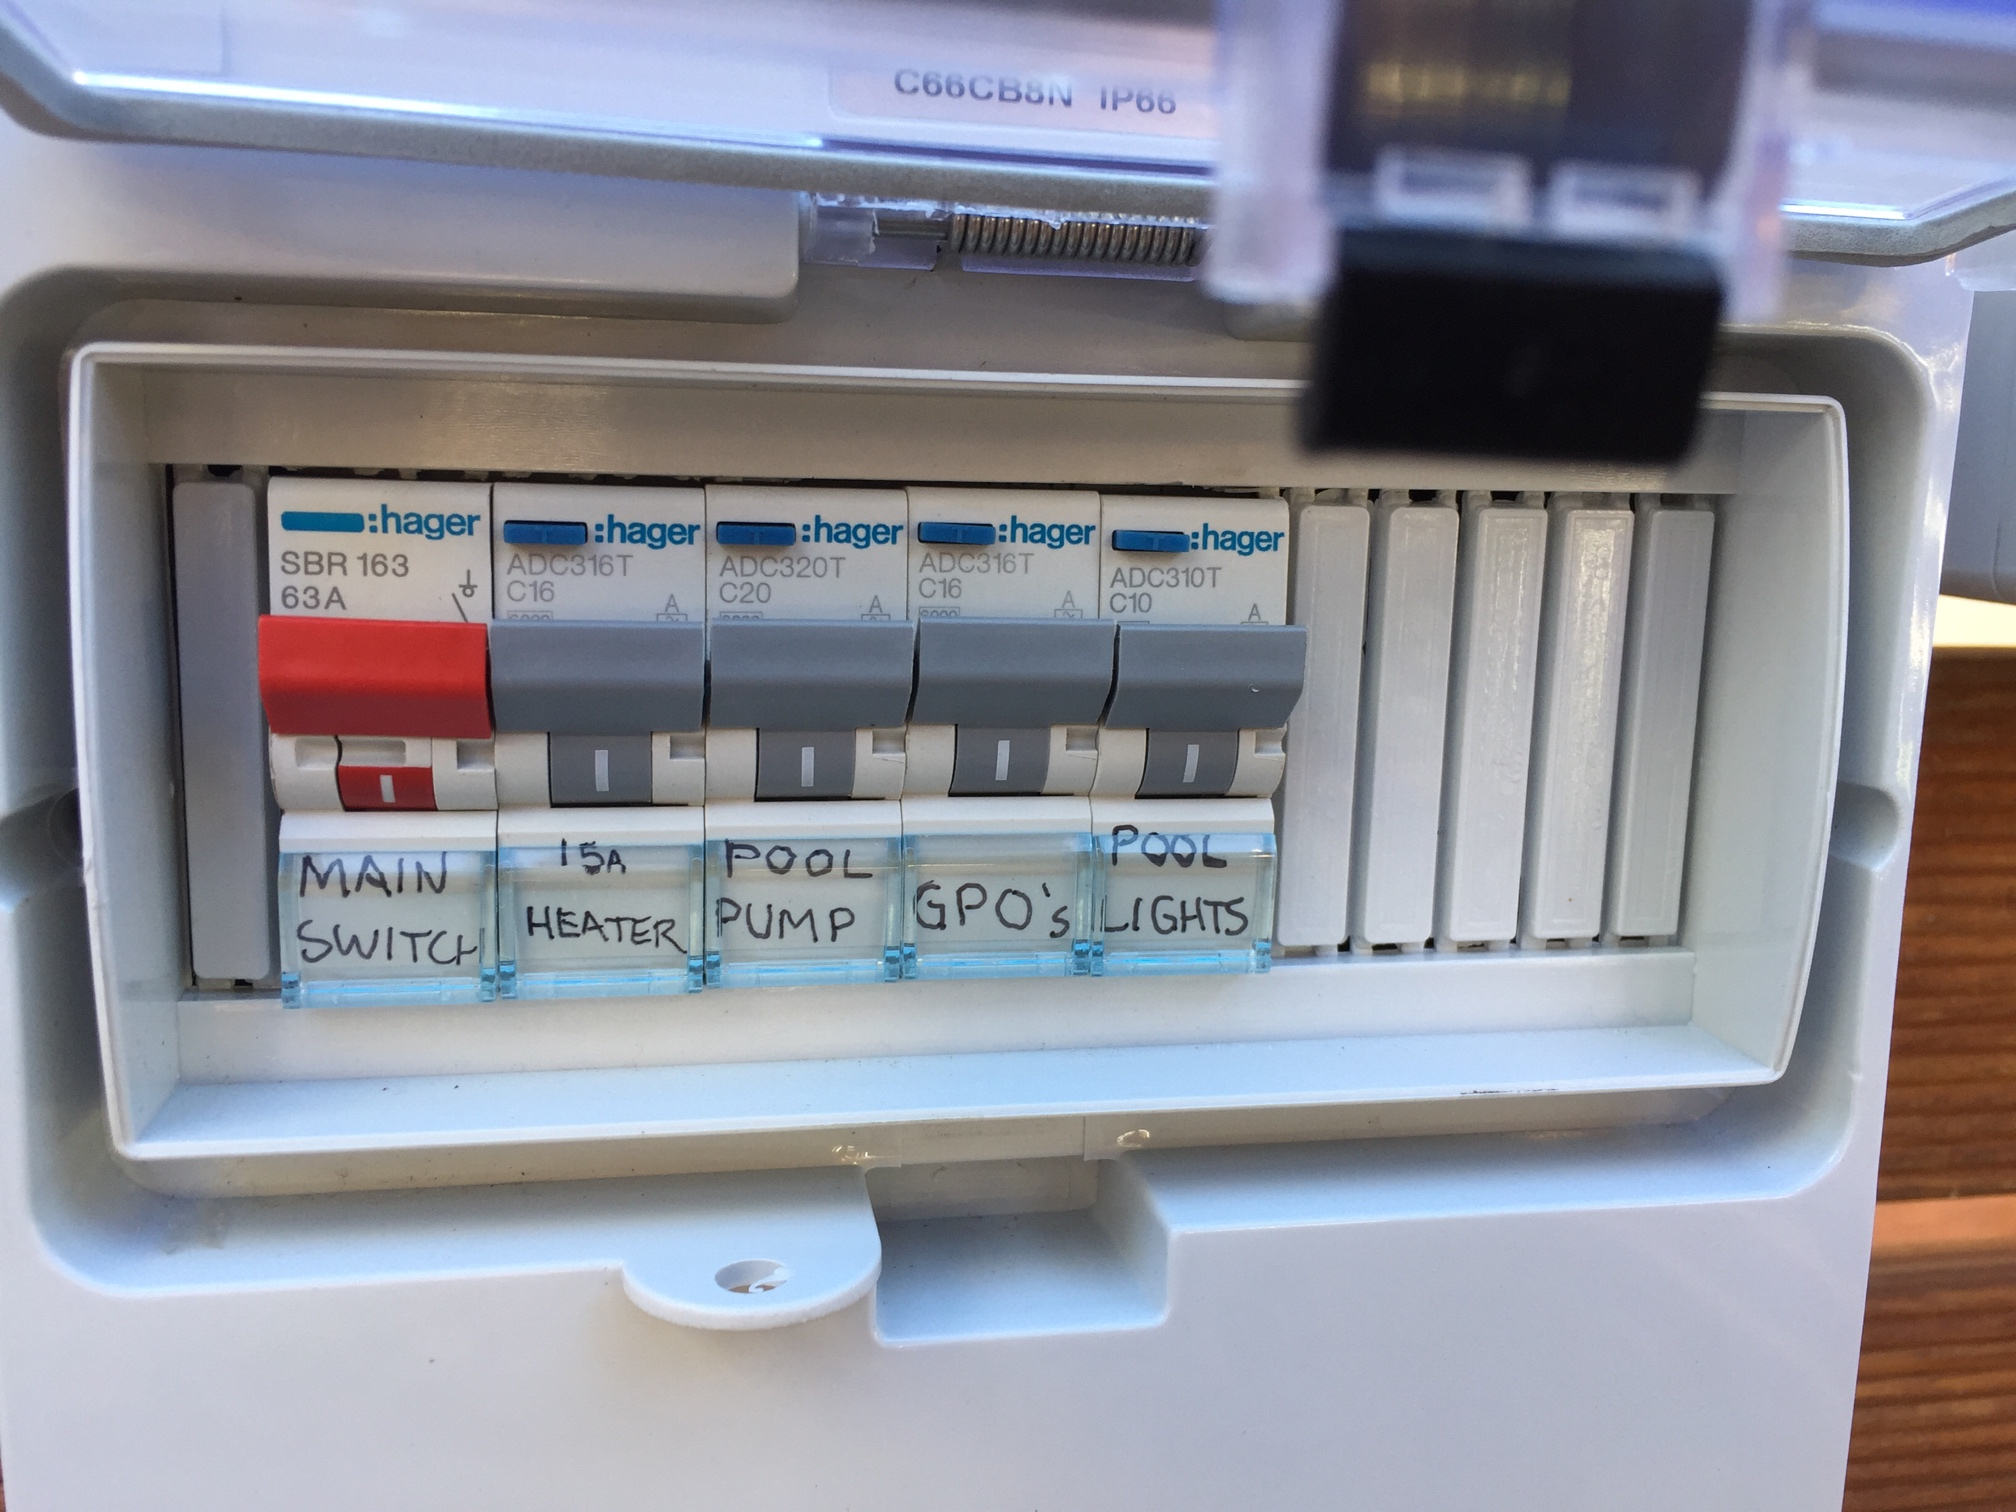 Pictured is the main switch which provides the power. The other four are safety switches. The blue switch at the top of each safety switch is a test button. It is best practise to test these every three months to ensure they are working as they should.